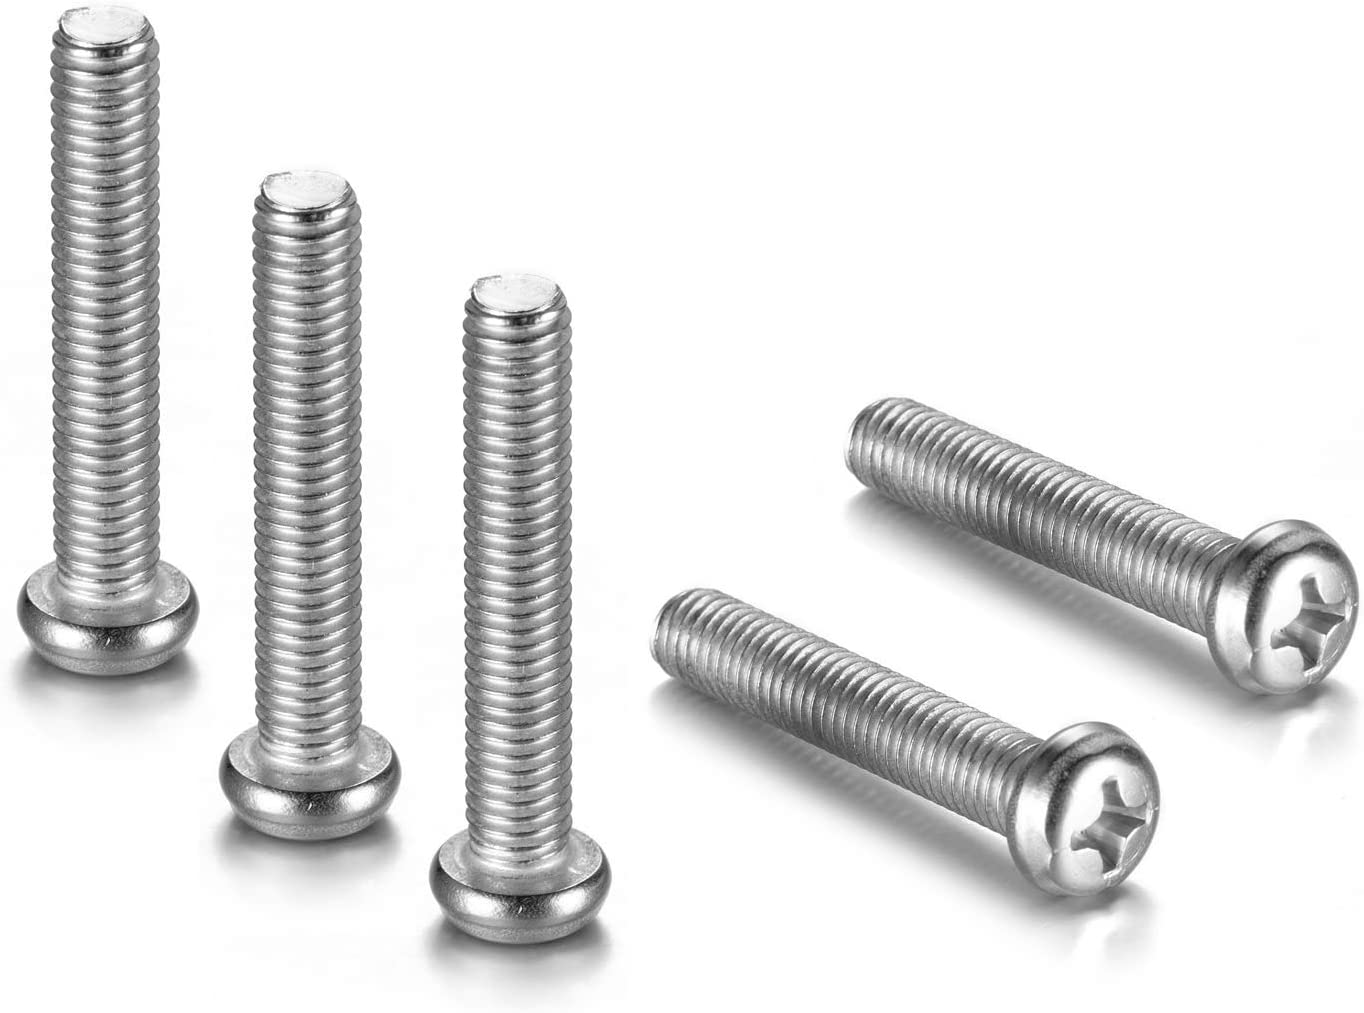 Wall Mounting Screws for Samsung TV - M8 x 45mm with Pitch 1.25mm Solid Screw Bolts for Samsung TV Wall Mounting, Work with Samsung 7, 8 Series TV